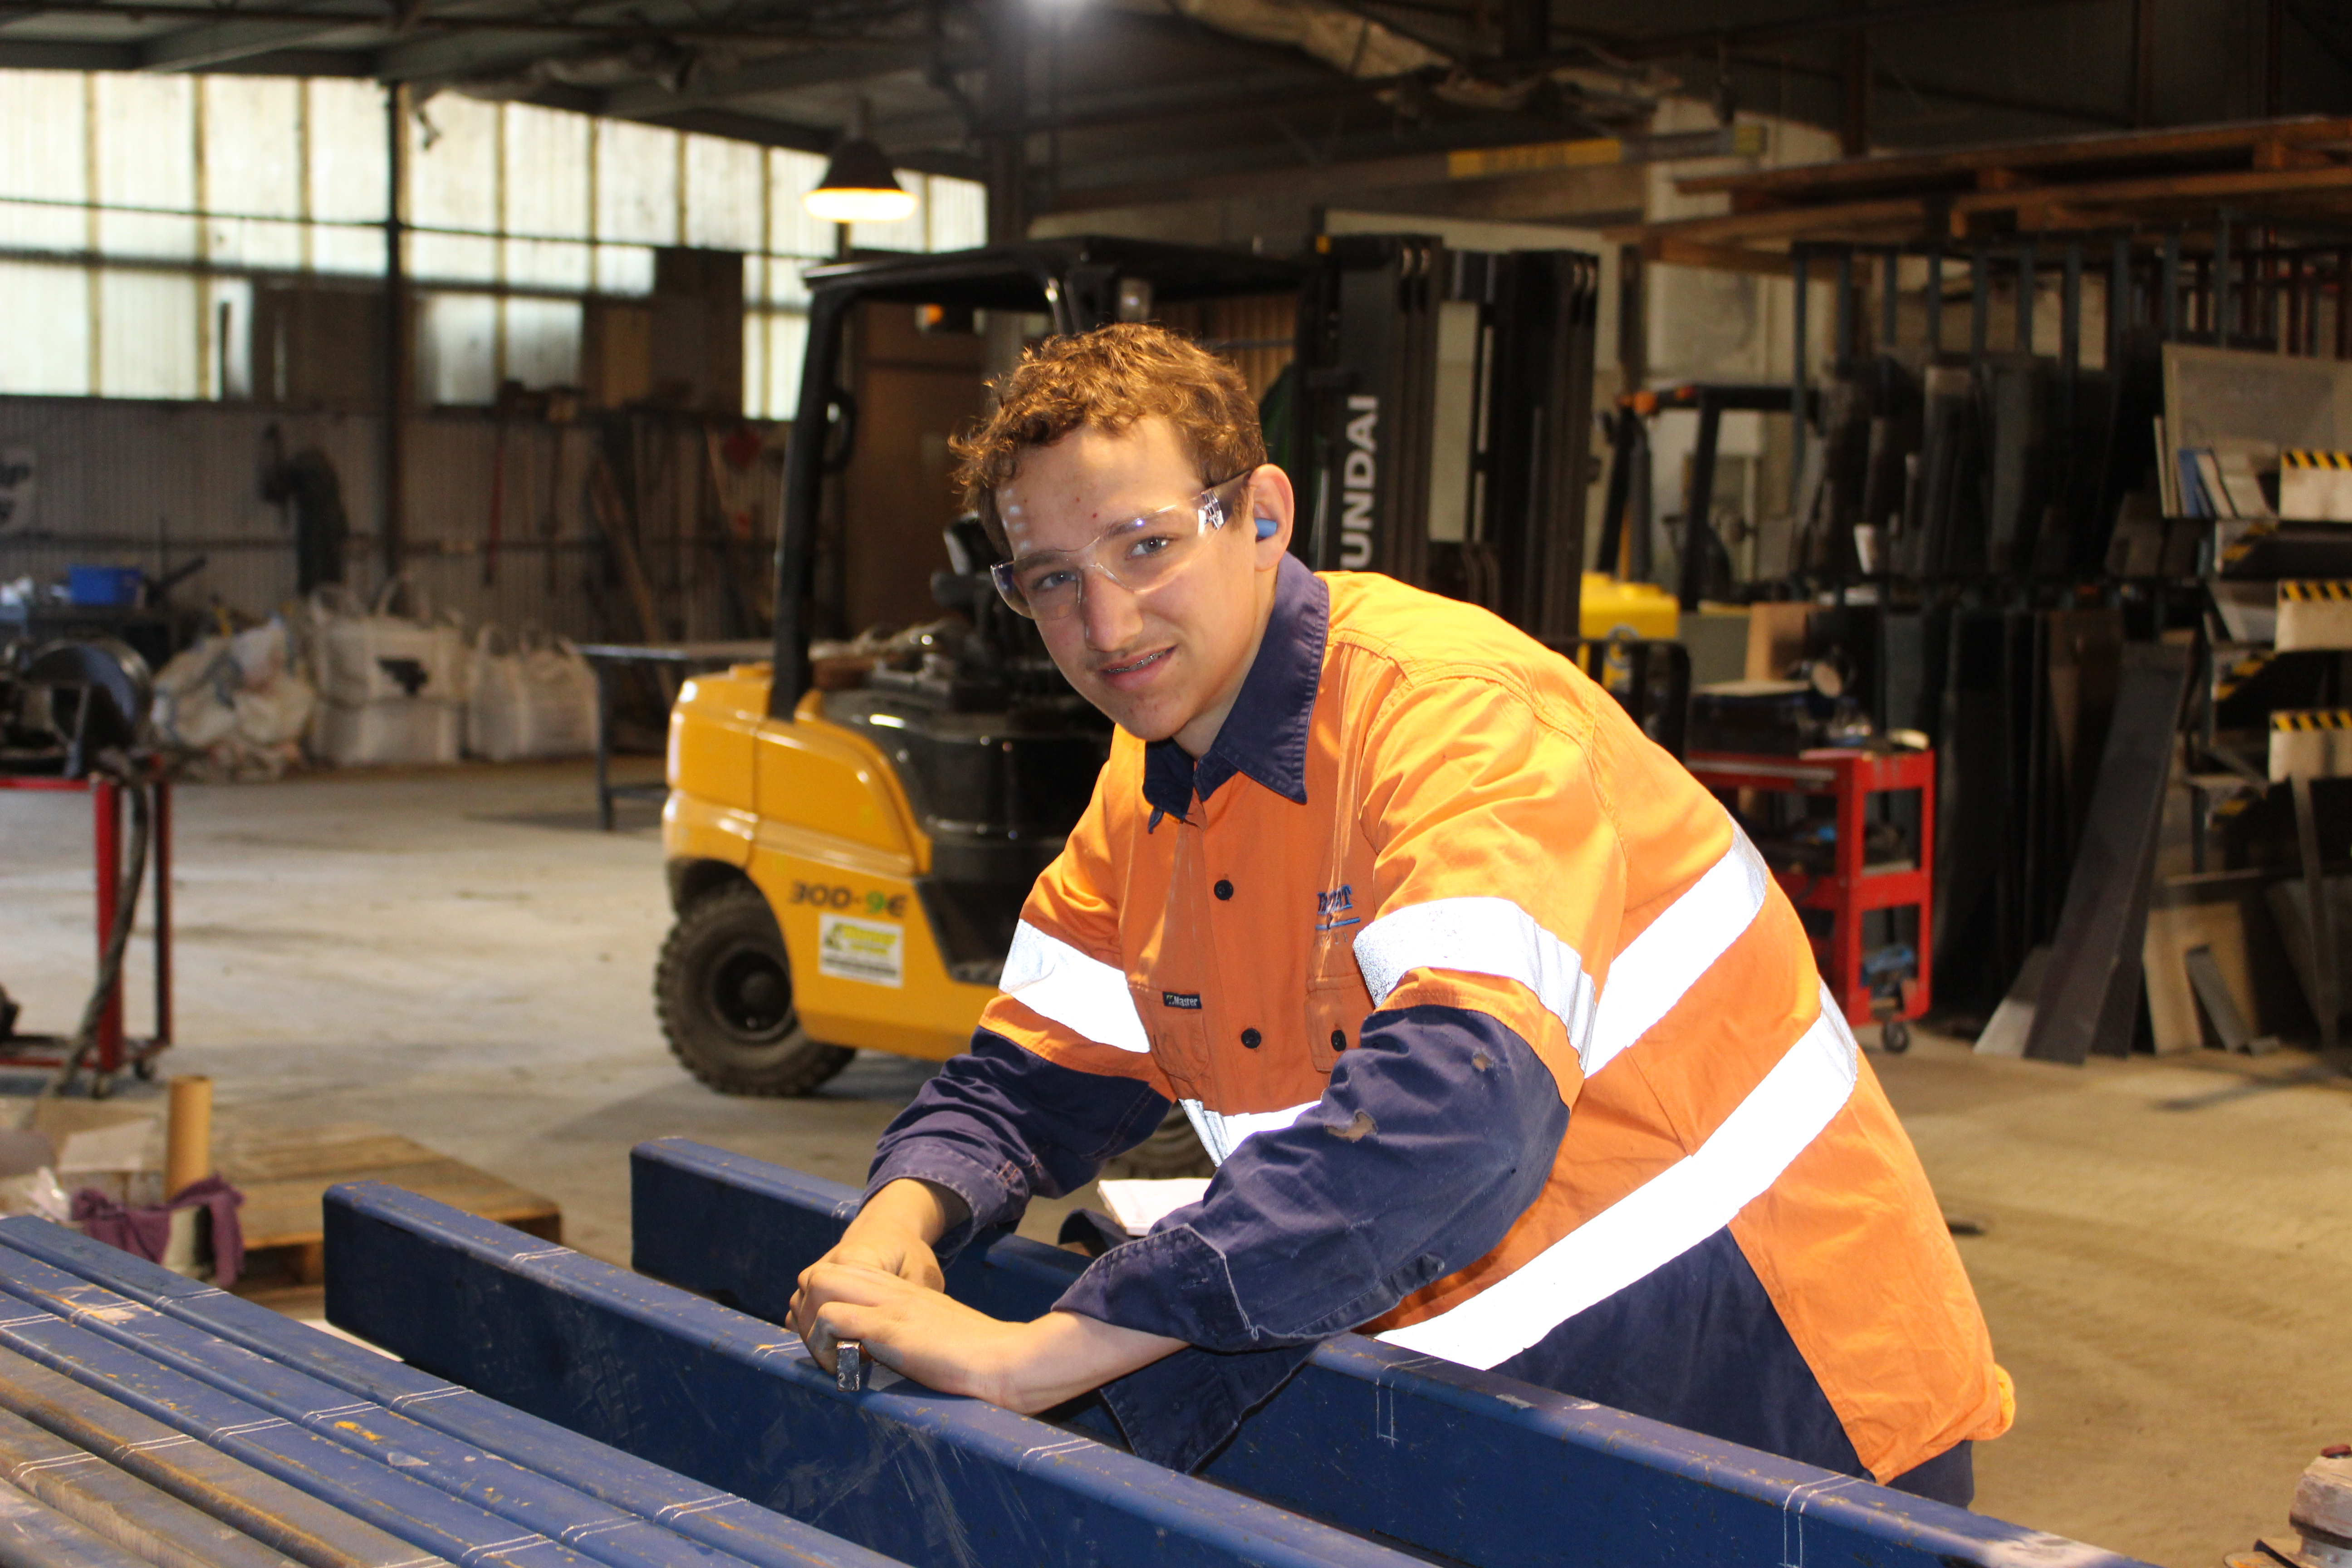 Mitchell Noack at work at Fabcoat in NUriootpa